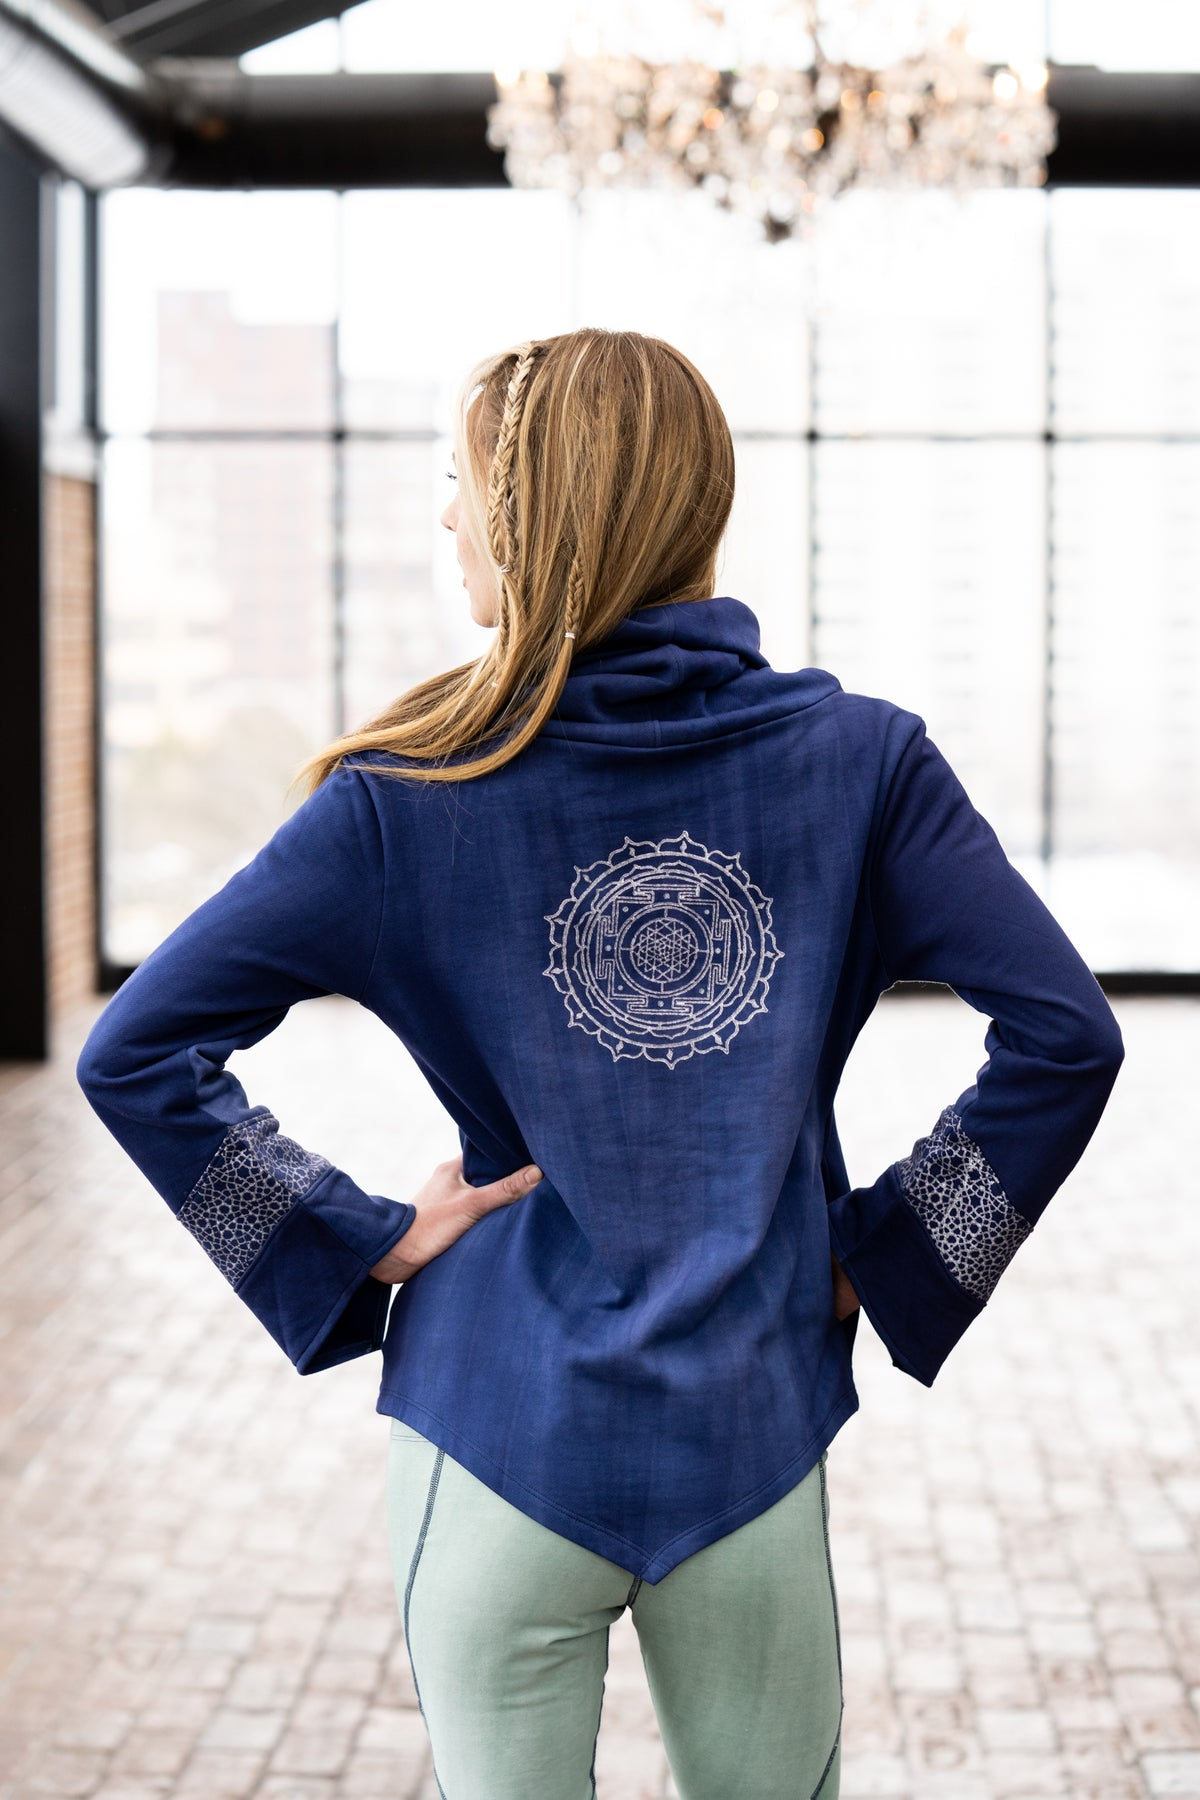 Prism Sweatshirt in Indigo